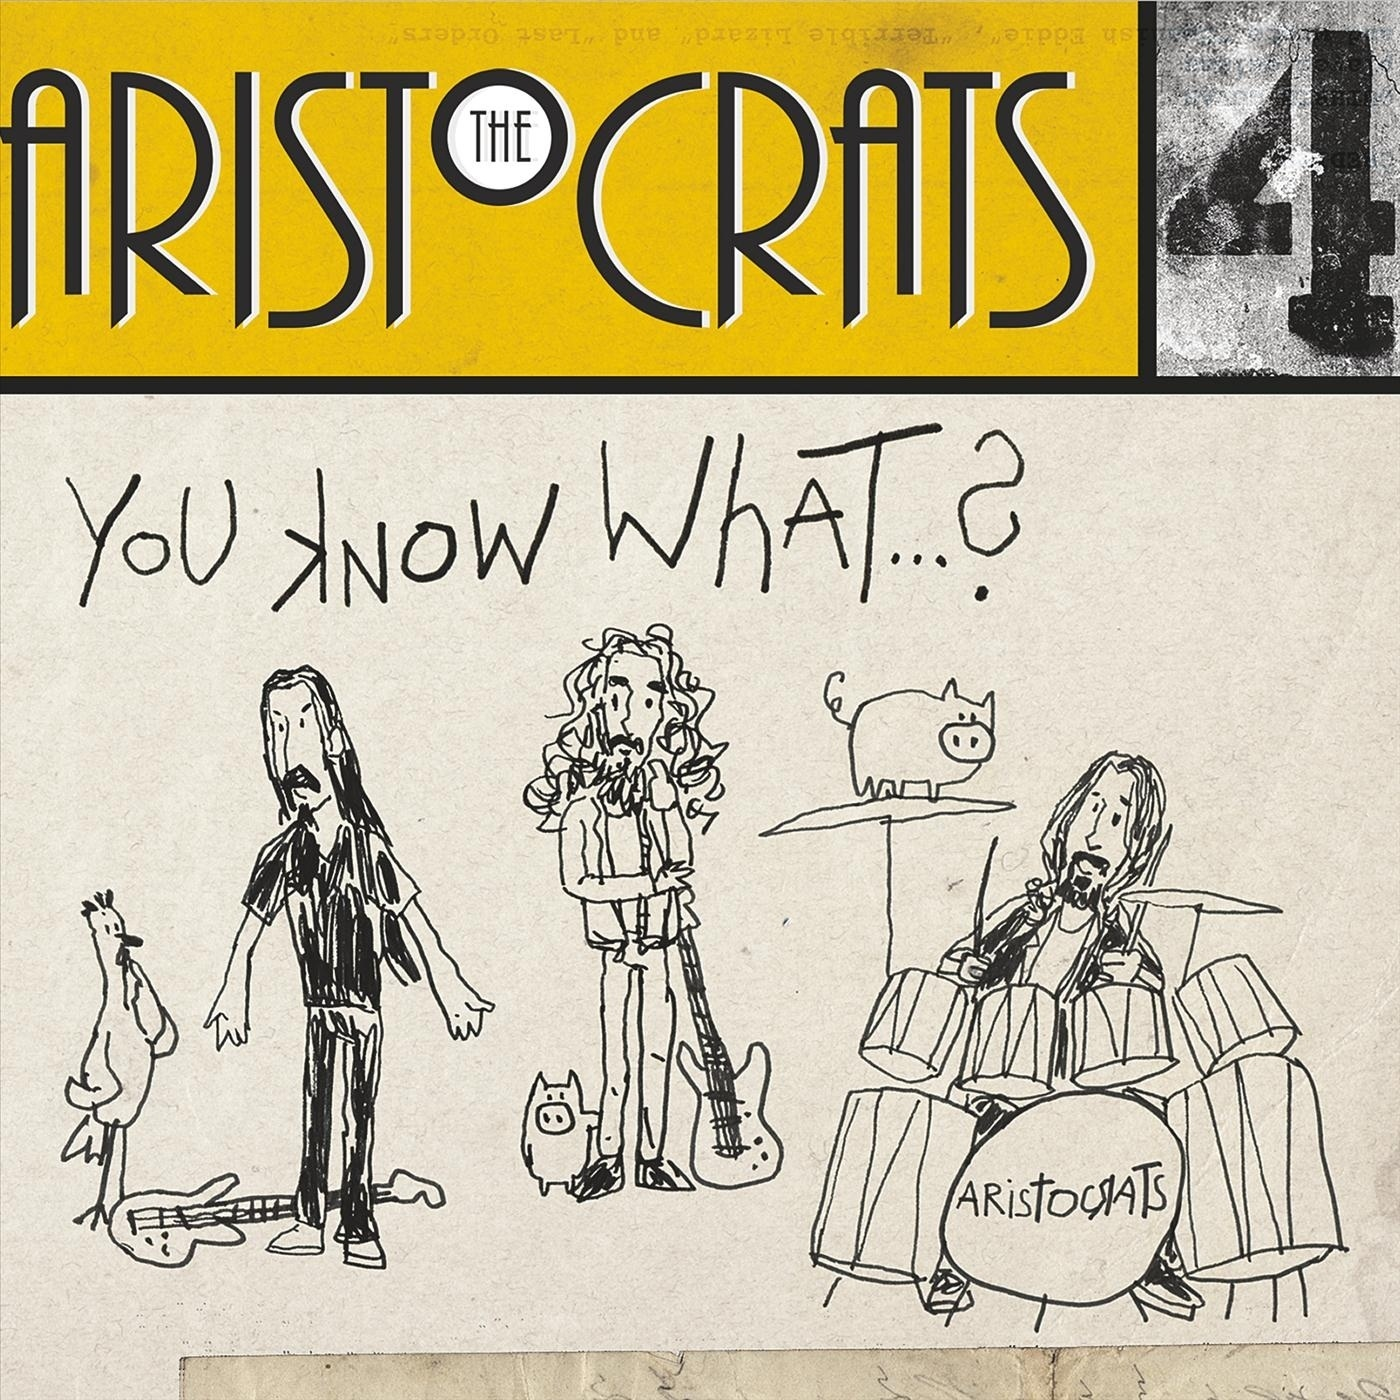 THE ARISTOCRATS - You Know What...? cover